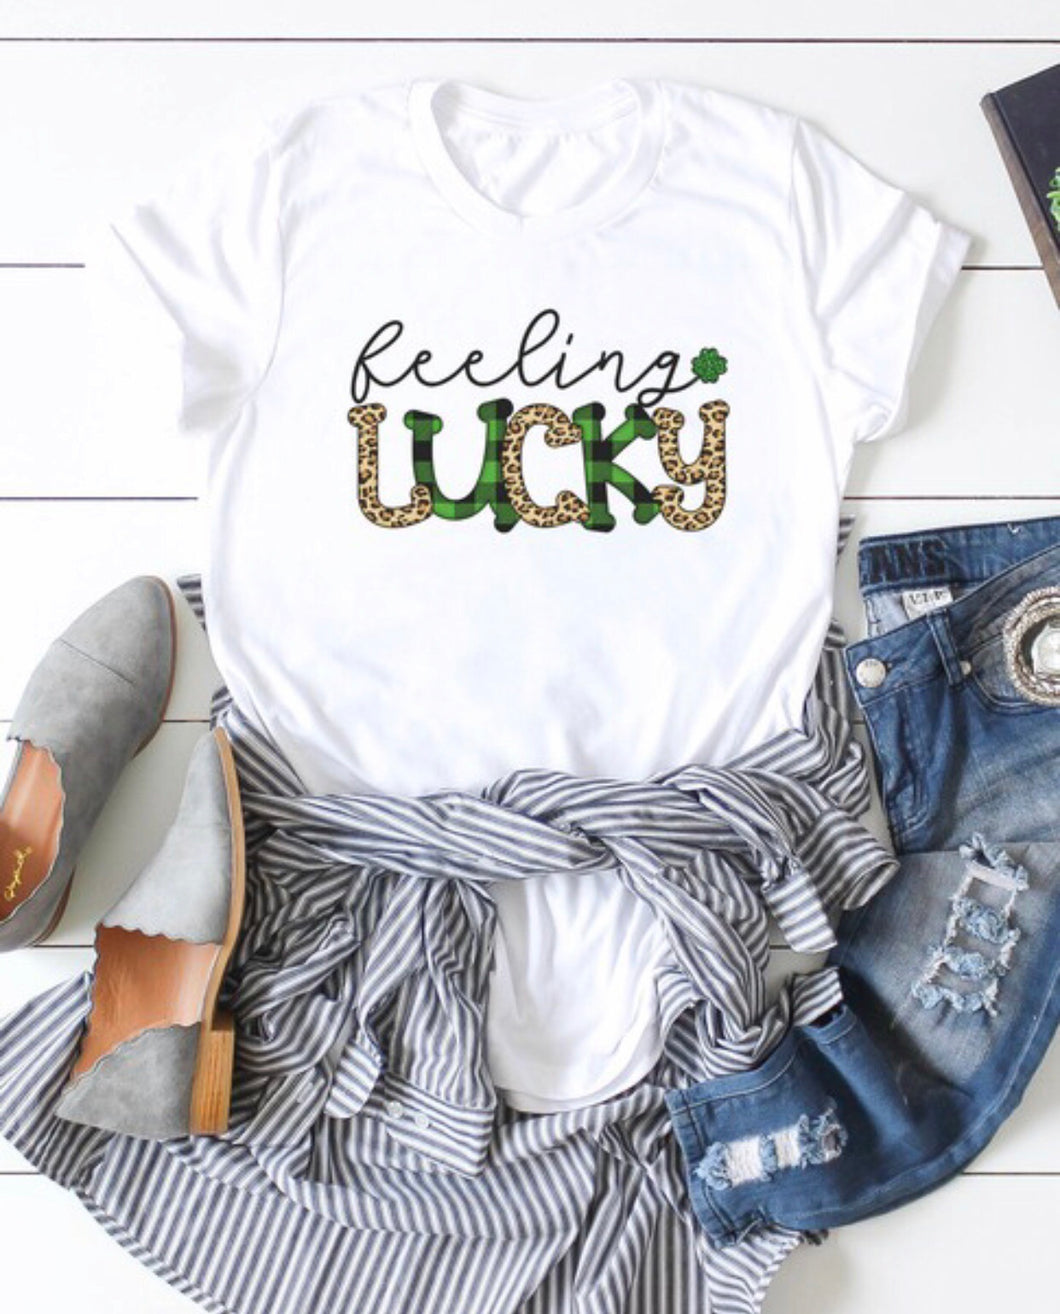 Feeling Lucky T-Shirt